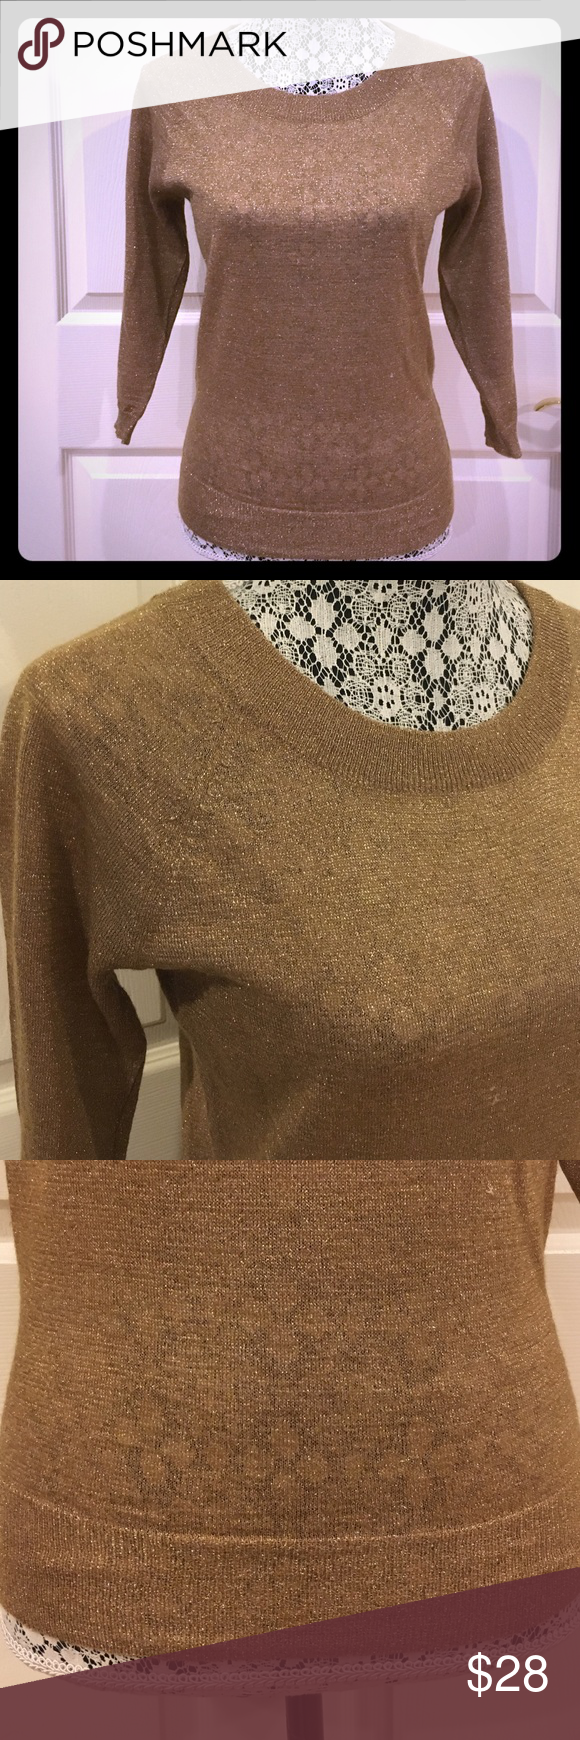 Madewell Gold Sweater Madewell sweater. Gold metallic material. 56% acrylic, 19% polyester, 14% mohair, and 11% metallic. Madewell Sweaters Crew & Scoop Necks